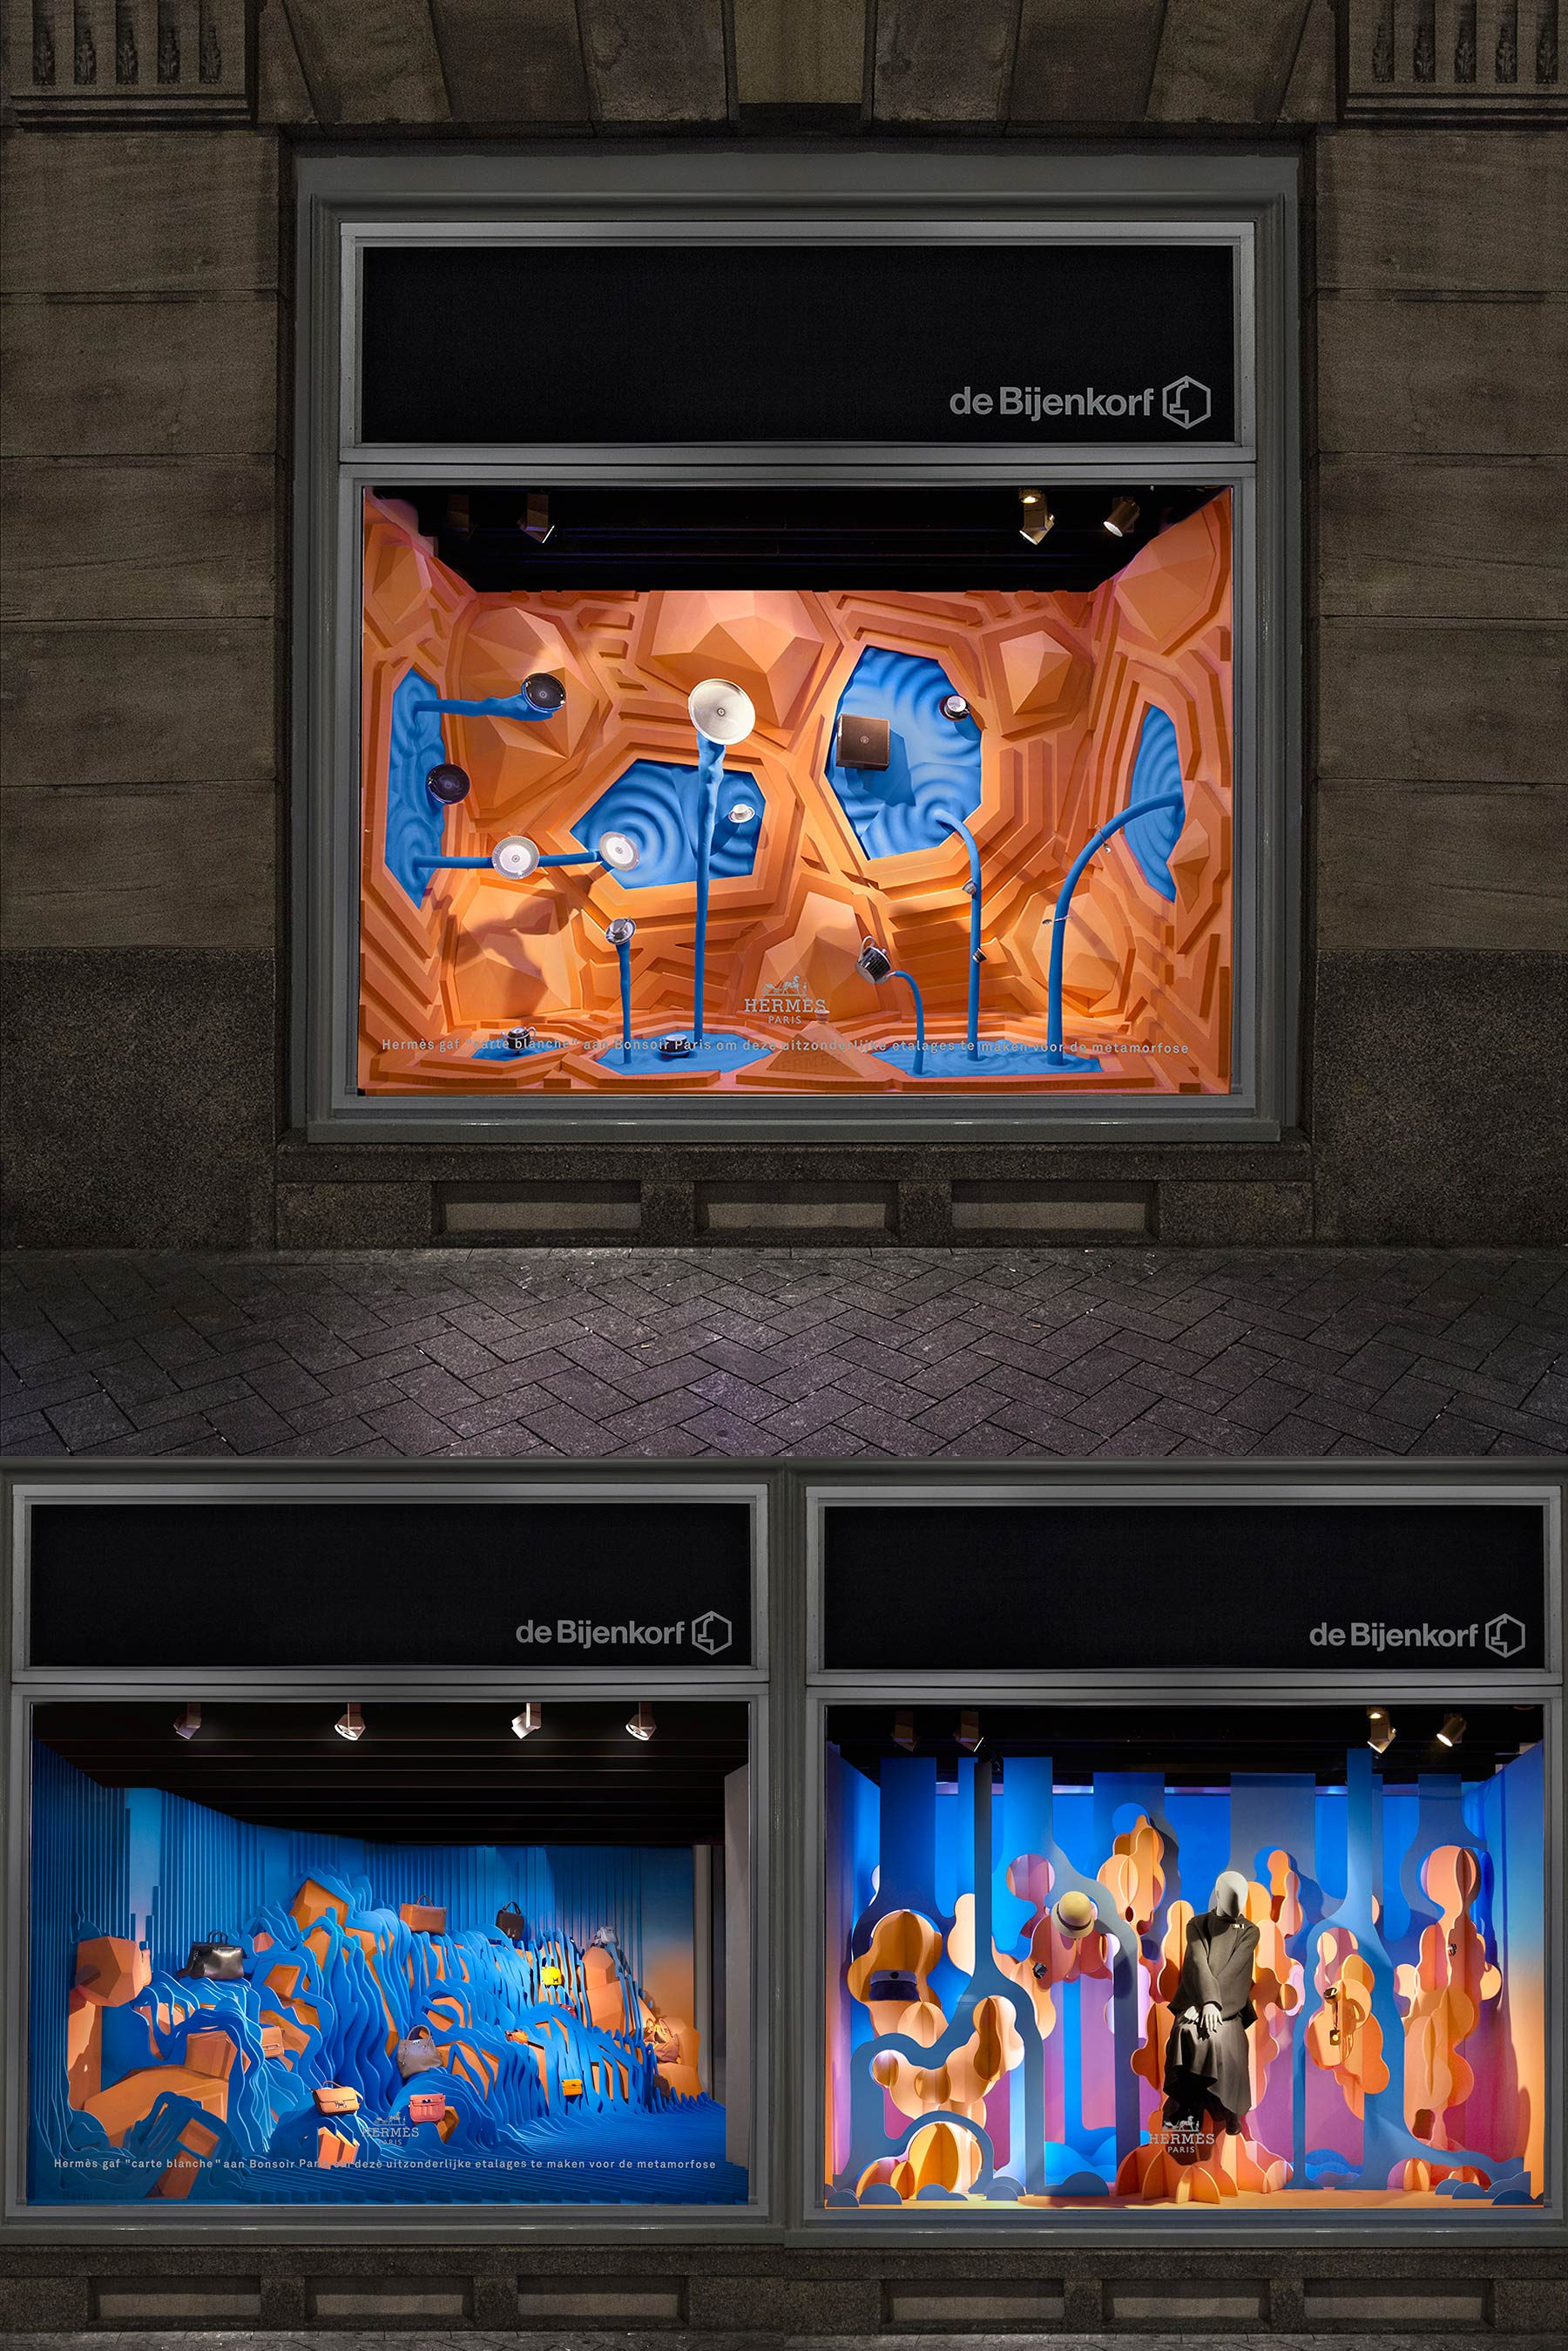 A series of shop windows displaying water aesthetics